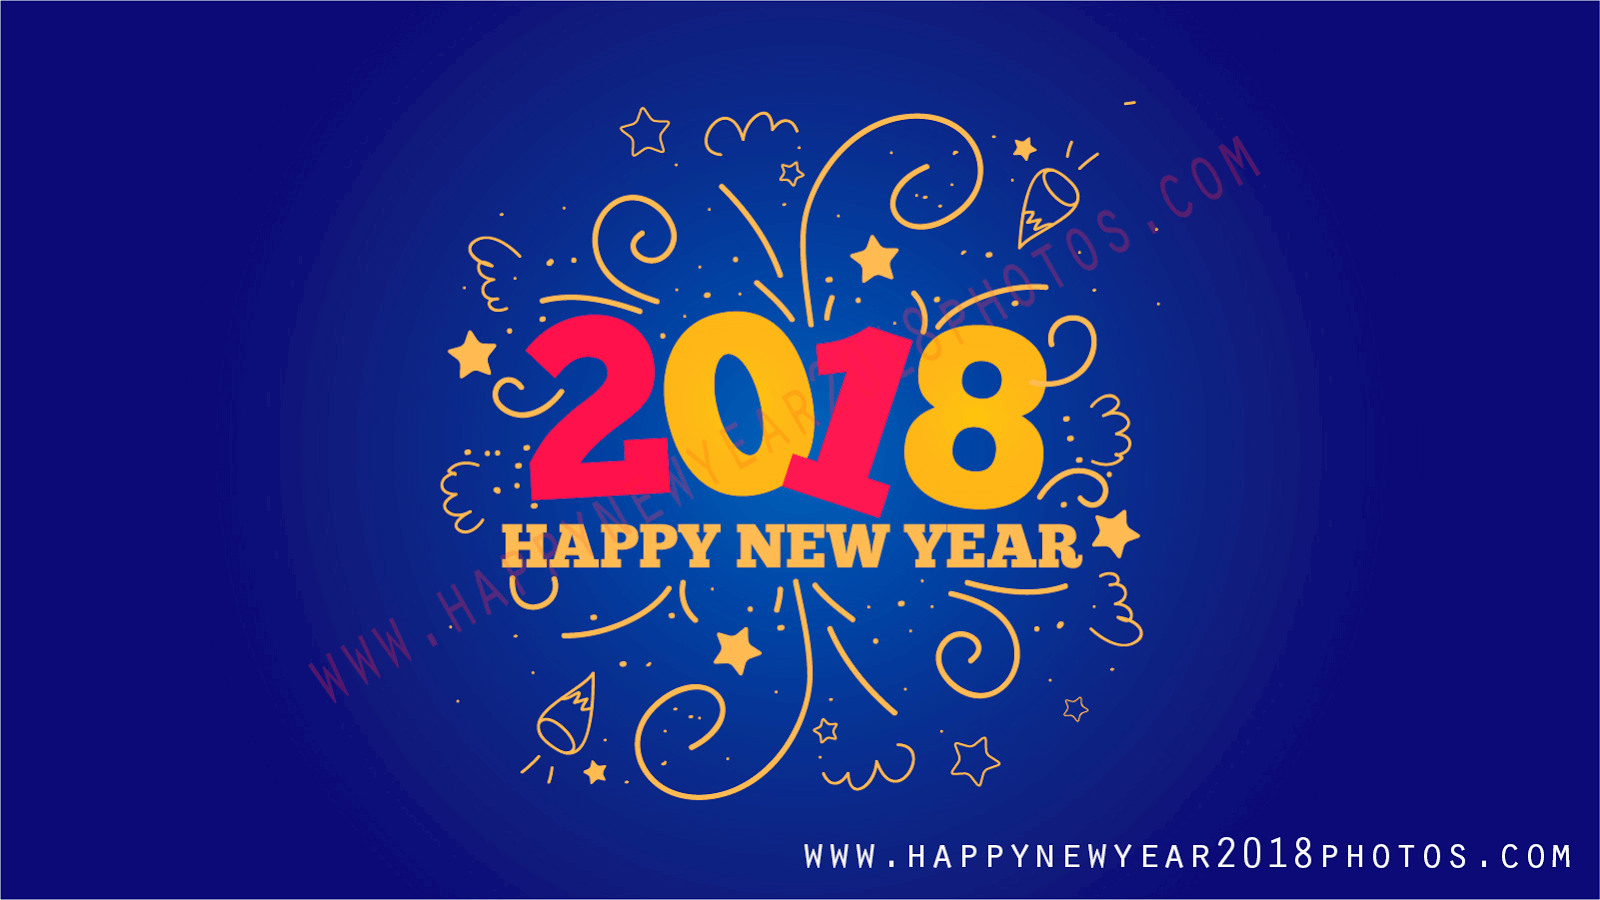 Happy New Year 2018 Hd Wallpapers Free Download Happy New Year